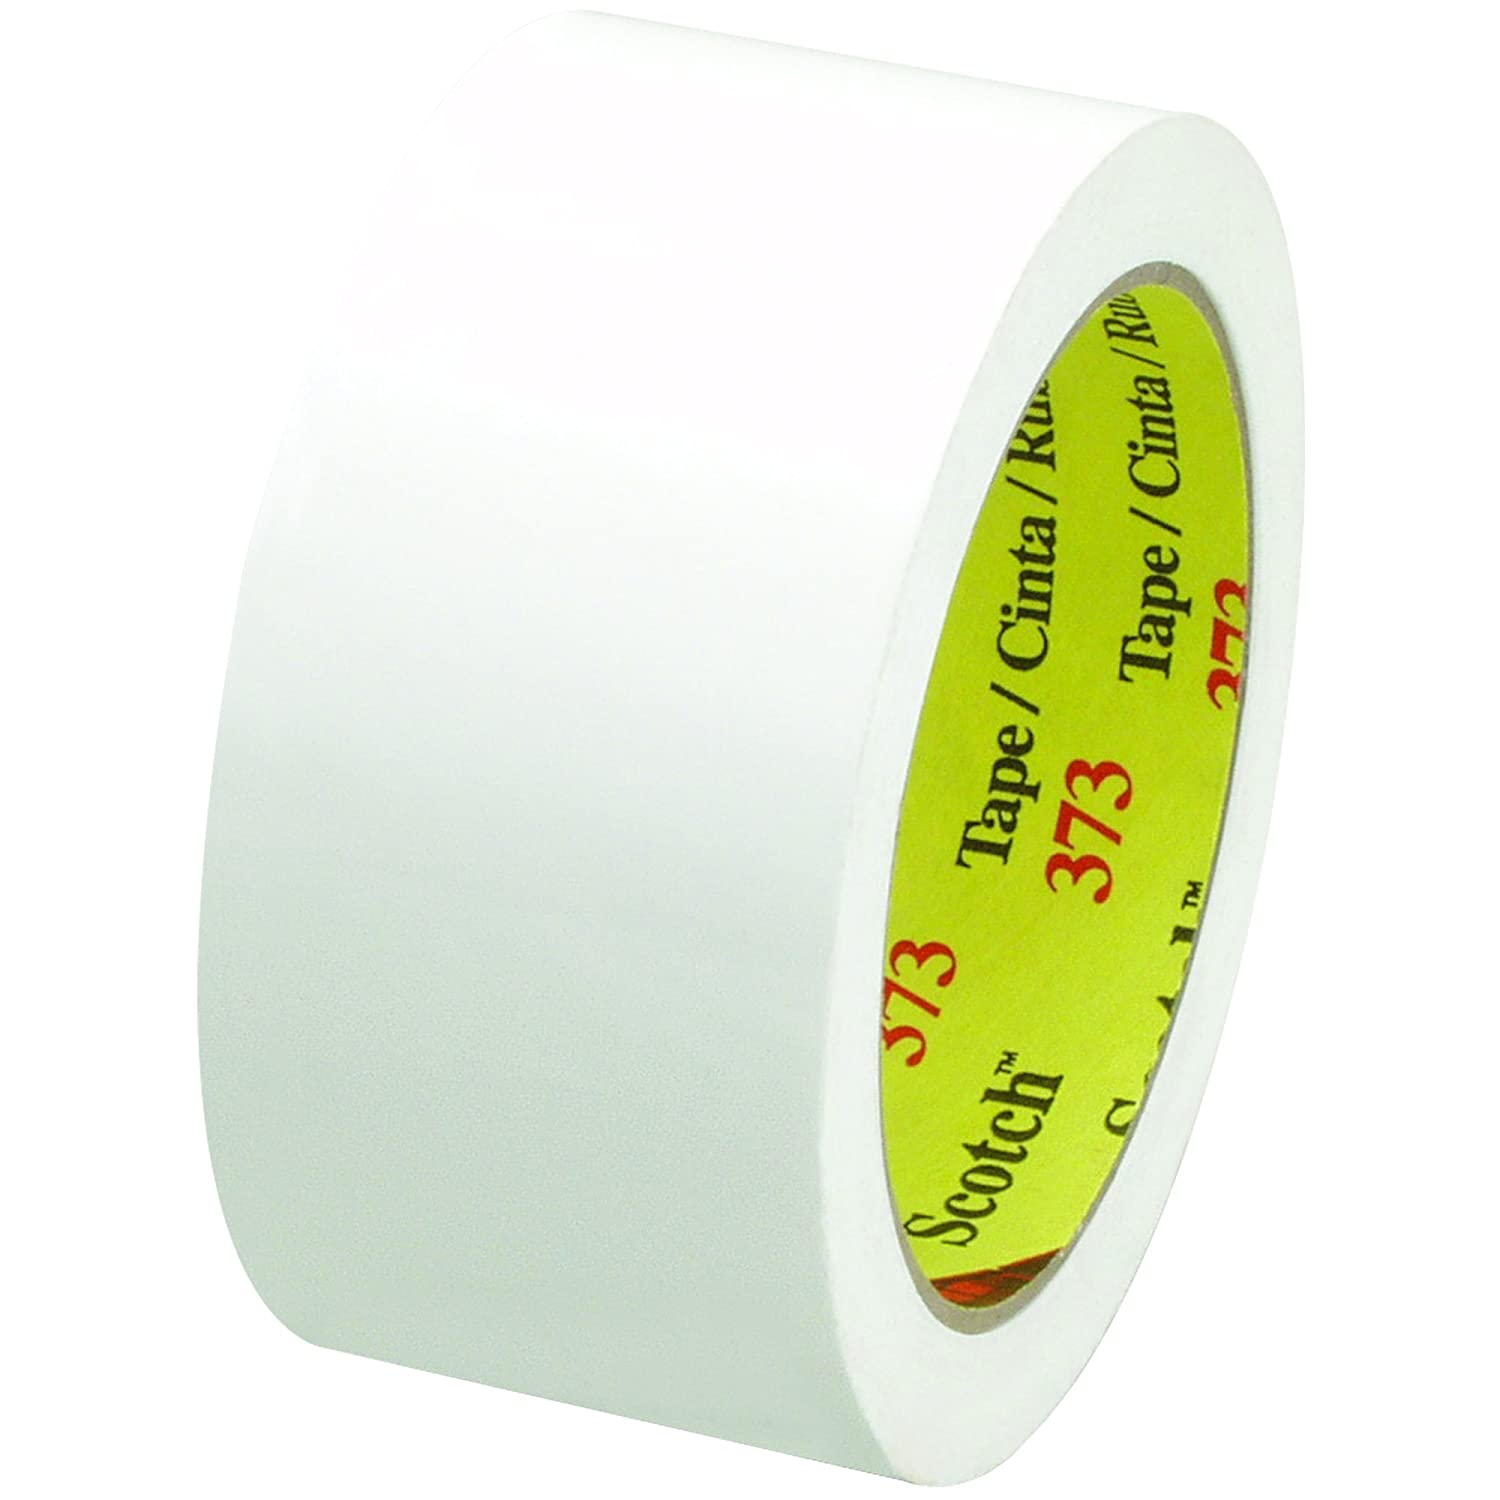 Scotch 373 High Performance Packing Tape x 2 55 2.5 Yards discount Inch Tucson Mall